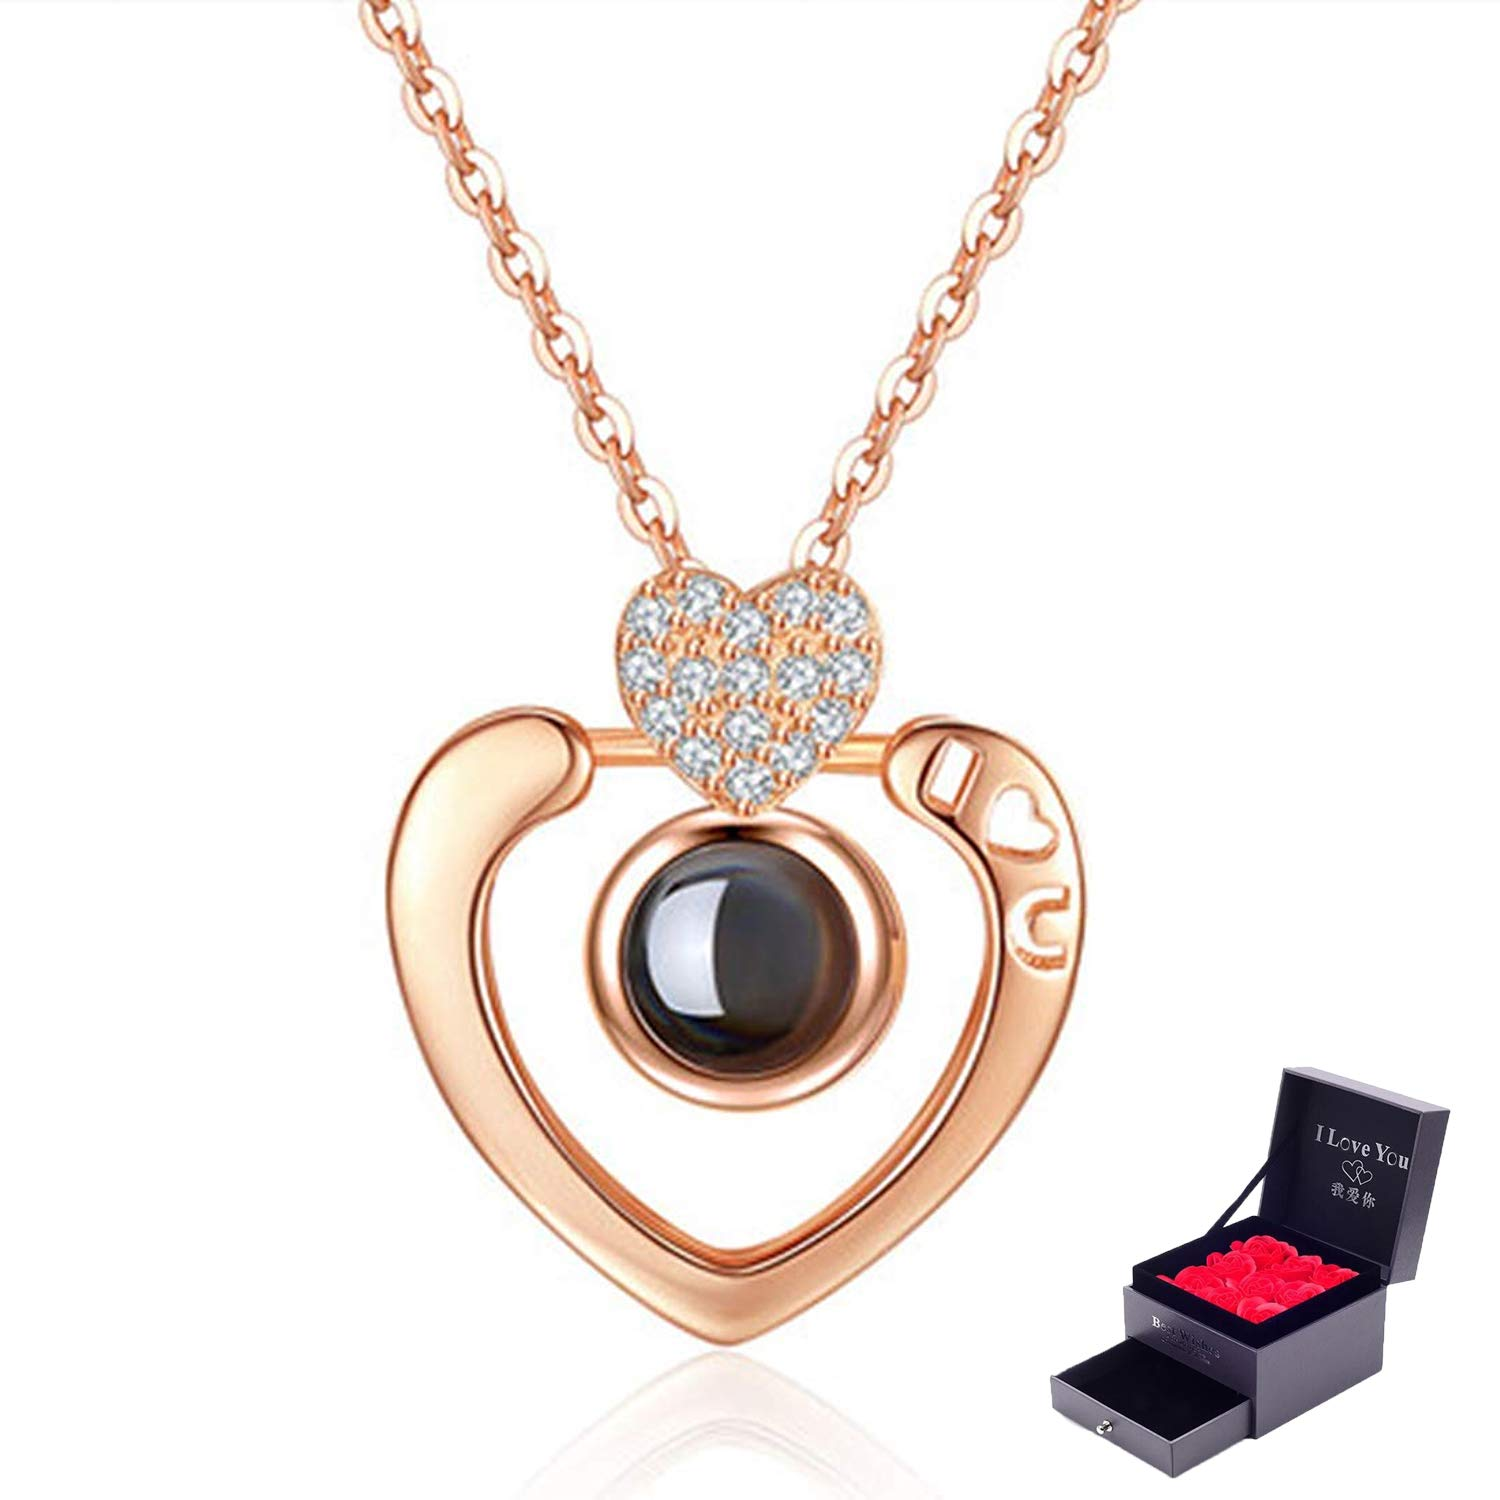 Feili Woman Necklace Love Memory 925 Silver Projection Pendant 100 Languages I Love You to Lover Grilfriend XL012